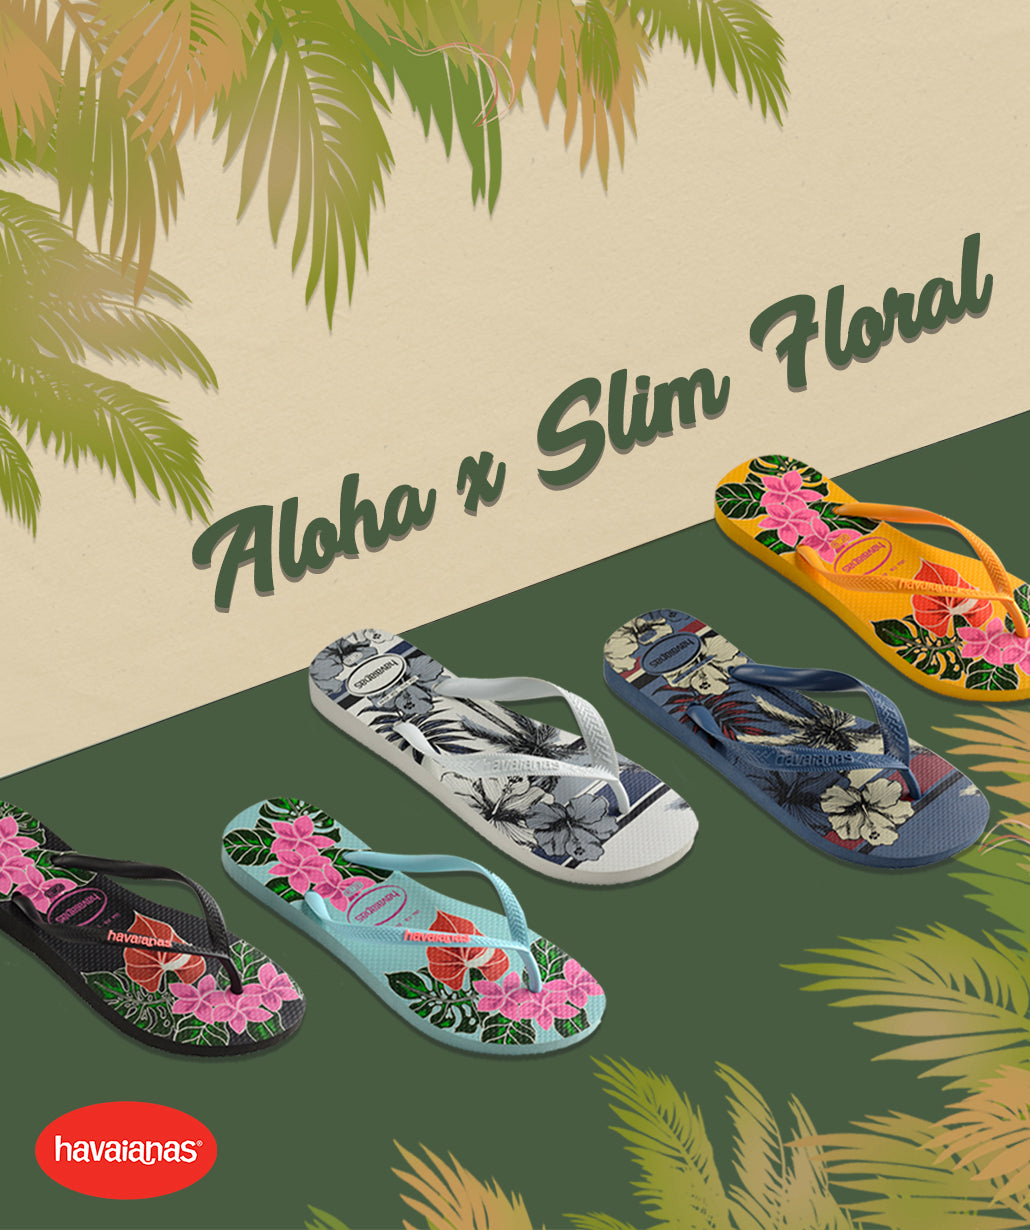 havaianas store in moa